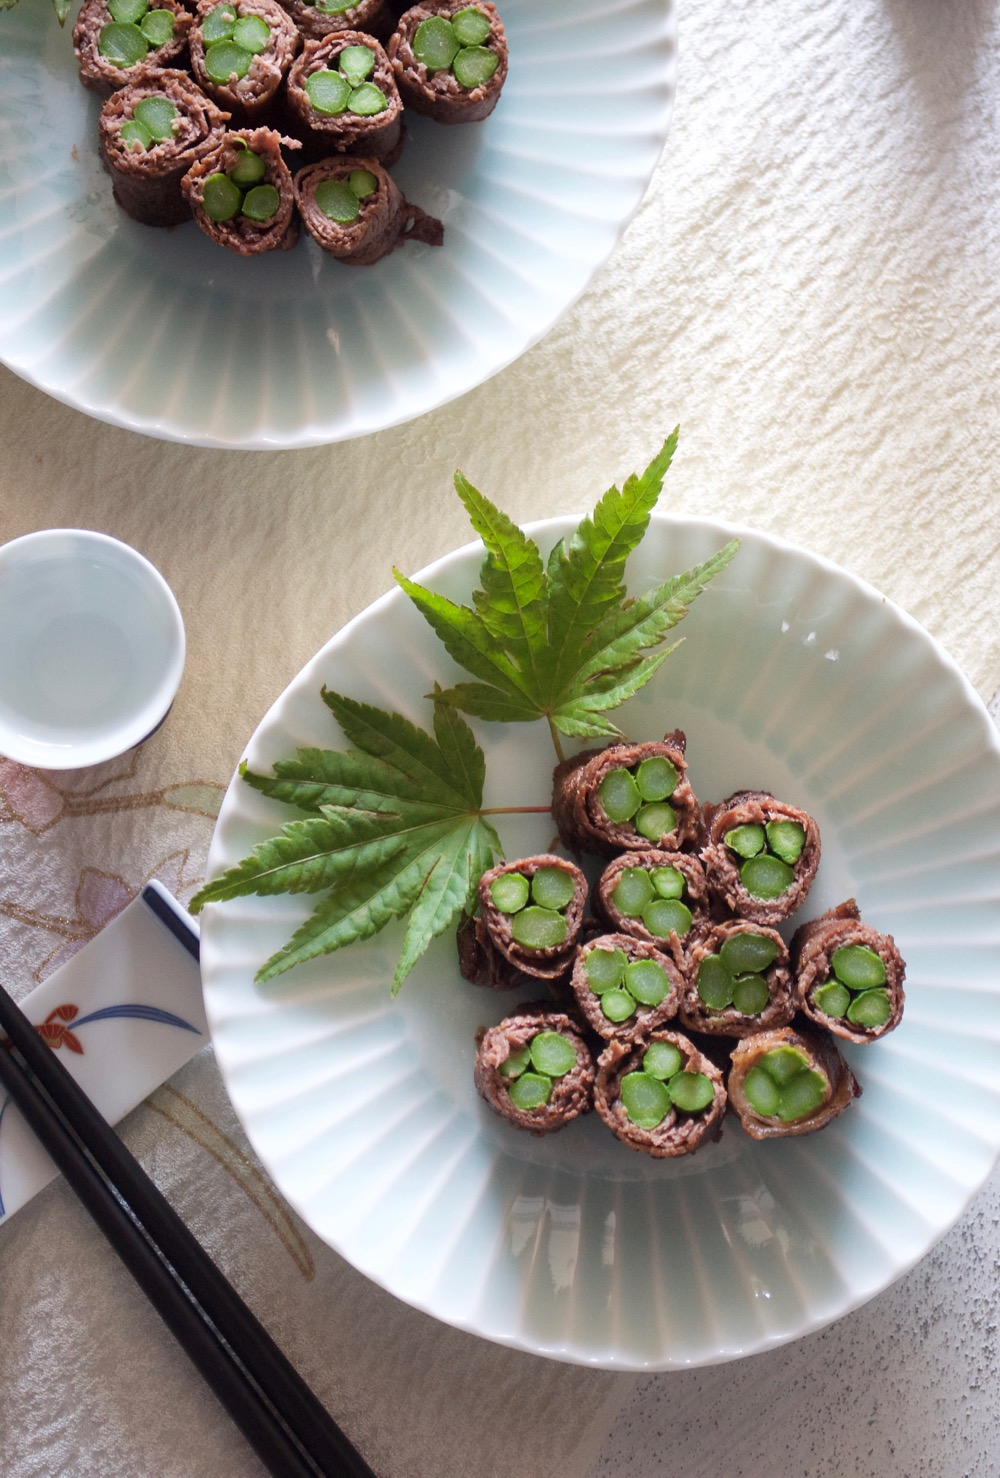 Asparagus is wrapped in thinly sliced beef, then cooked in flavoursome sauce. The sauce of the beef rolls is similar to teriyaki sauce so the flavour is guaranteed. Perfect for appetiser or as party food.